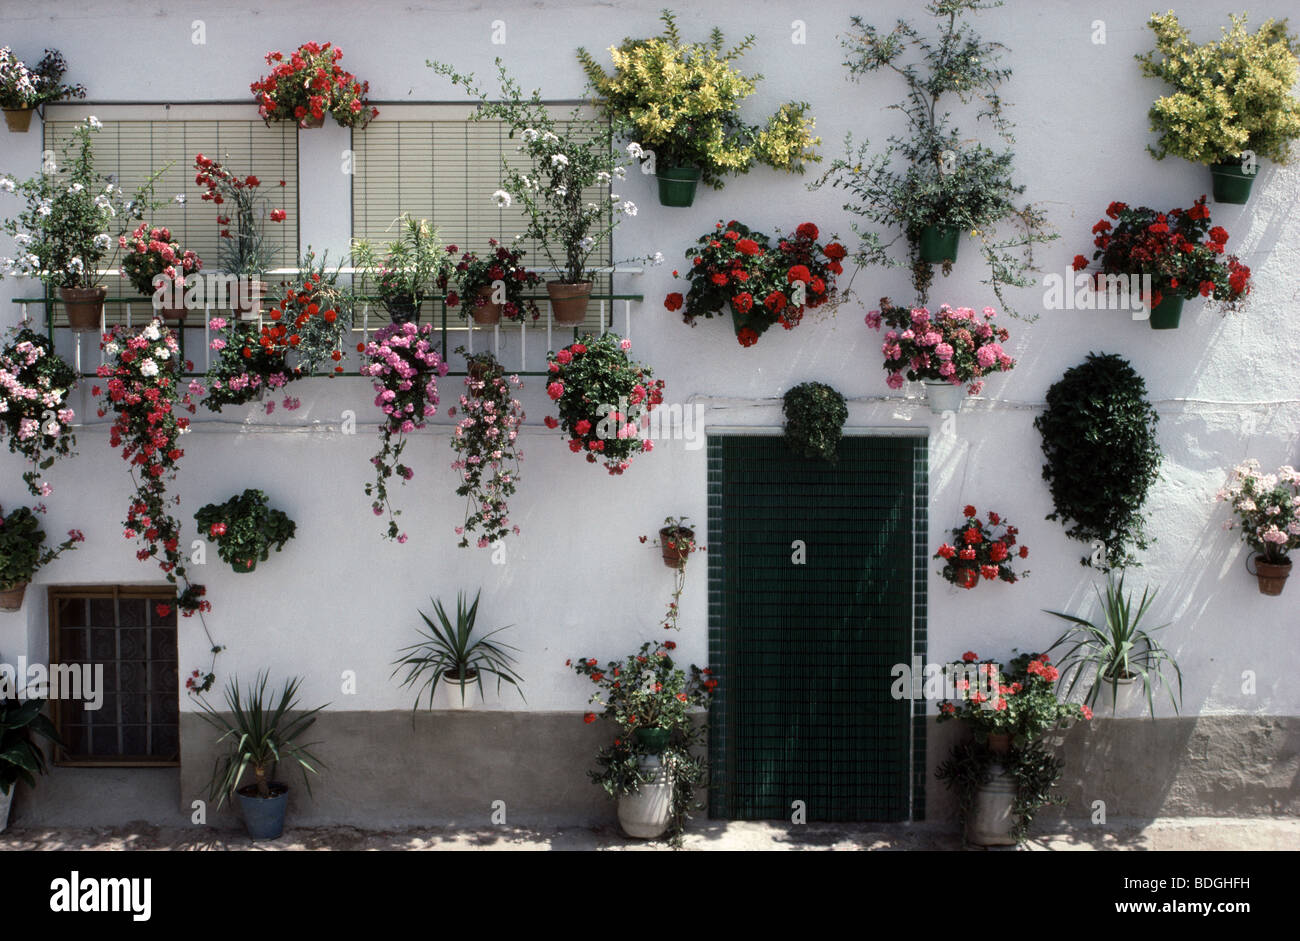 How to decorate home with flowers - Flowers Decorate House In Juviles Village High Alpujarras Granada Andalucia Spain